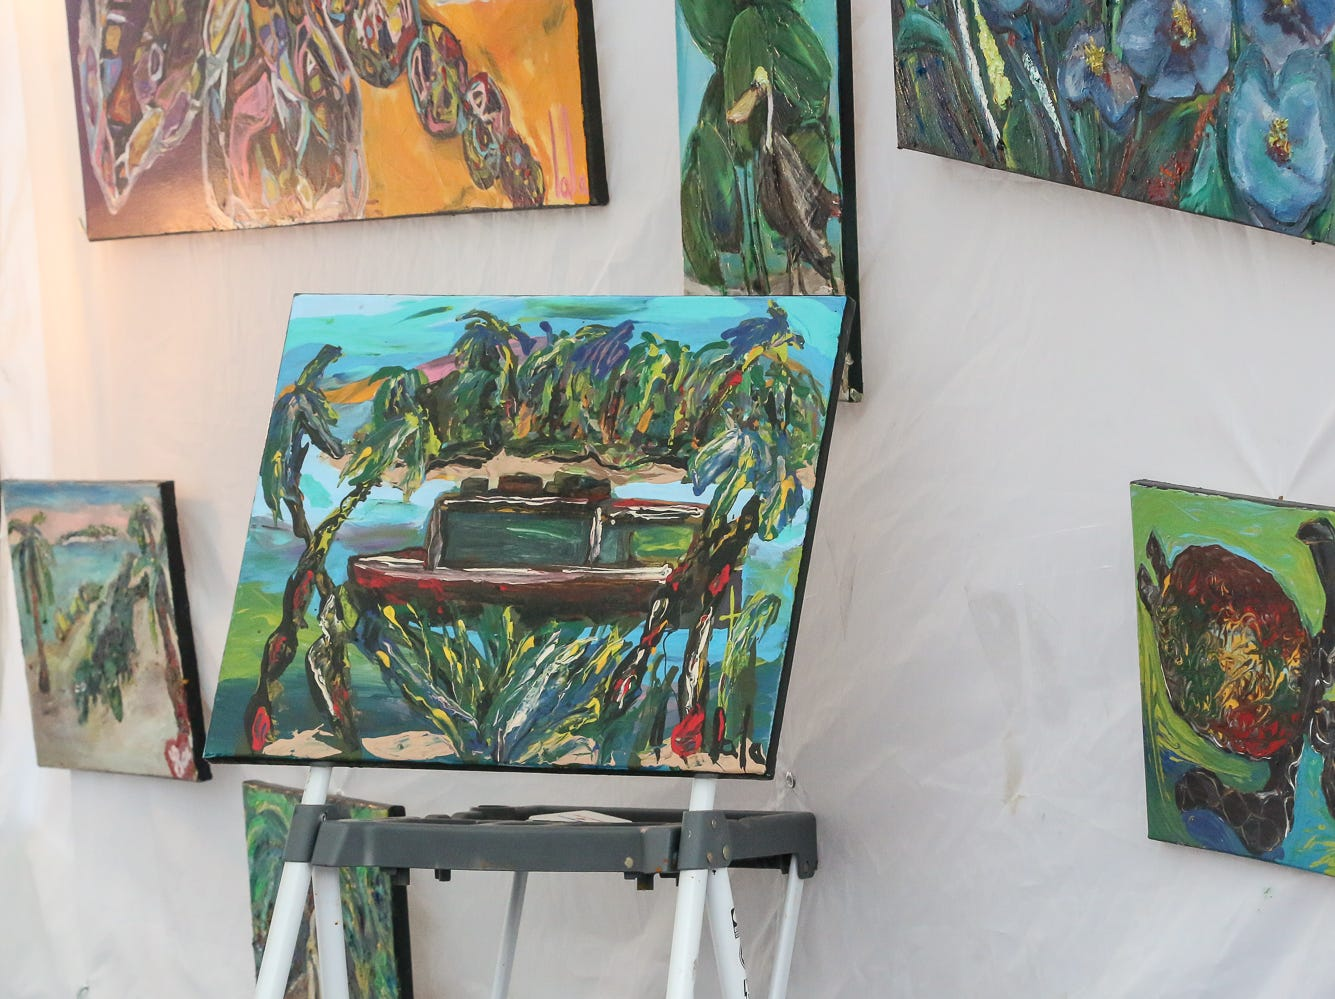 Some of the pieces on display during Gallery Night on Friday, August 17, 2018.